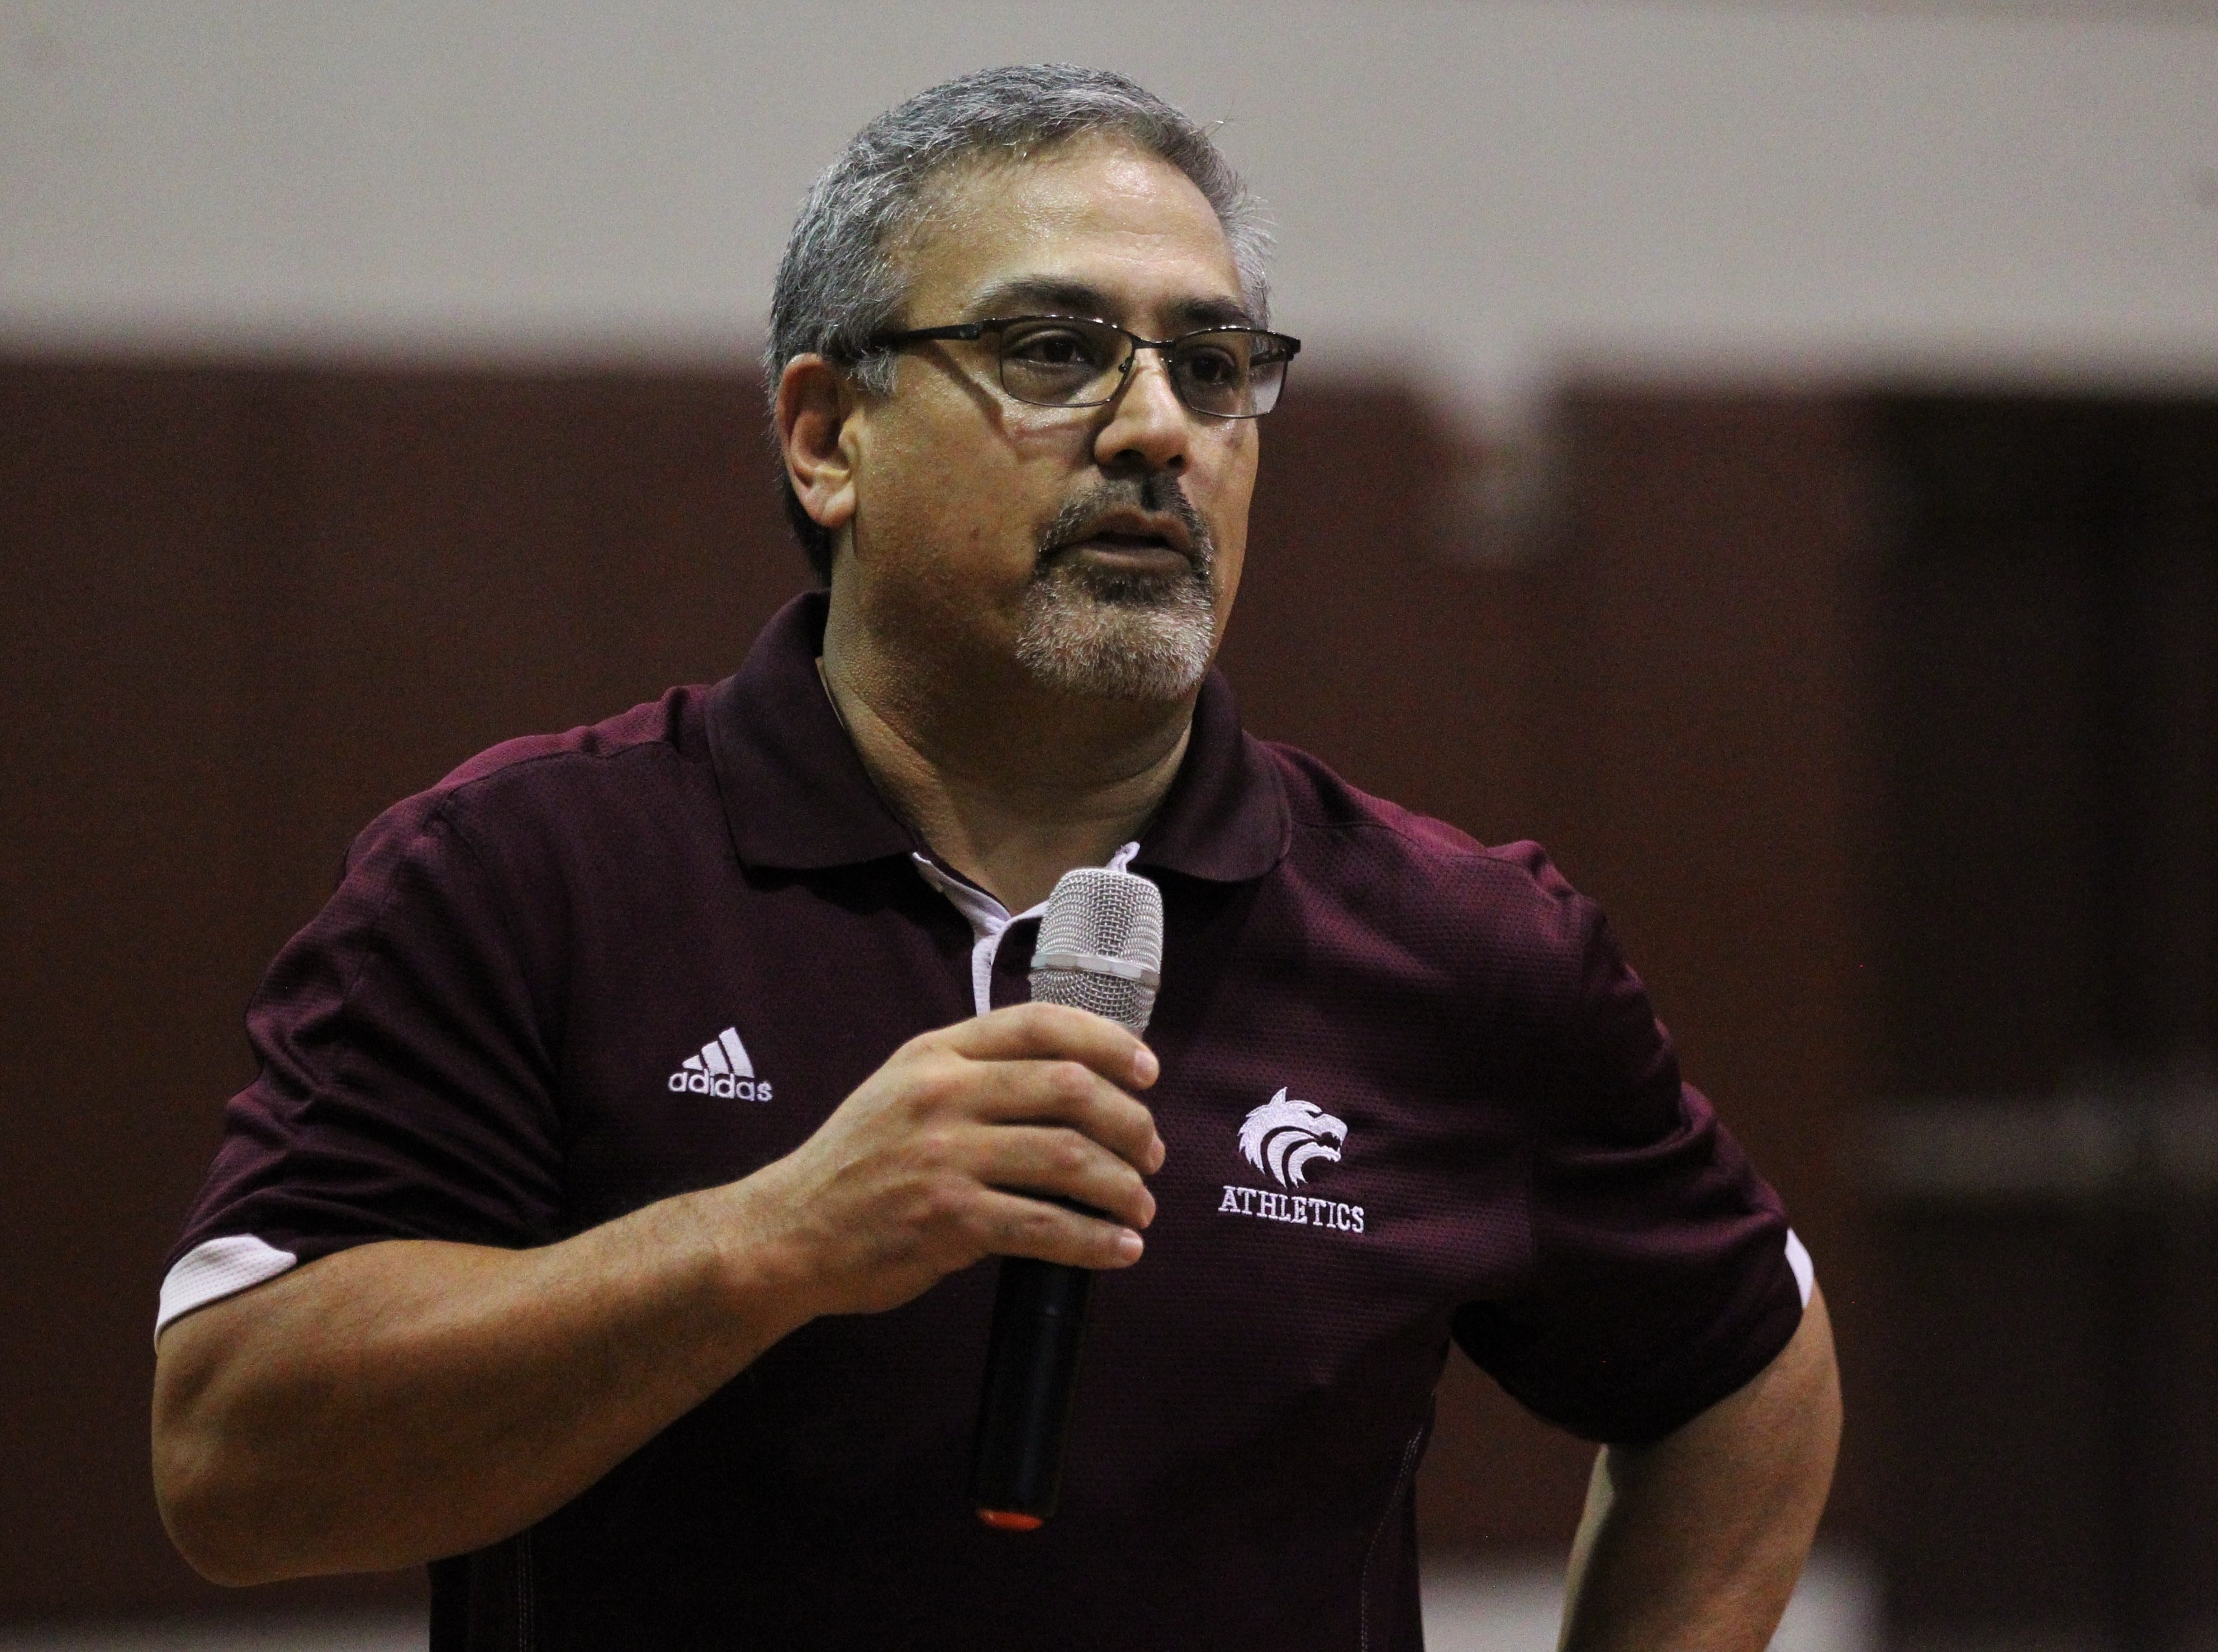 Chiles athletic director Mike Eto talks to a crowd during National Signing Day ceremonies on Feb. 6, 2019.